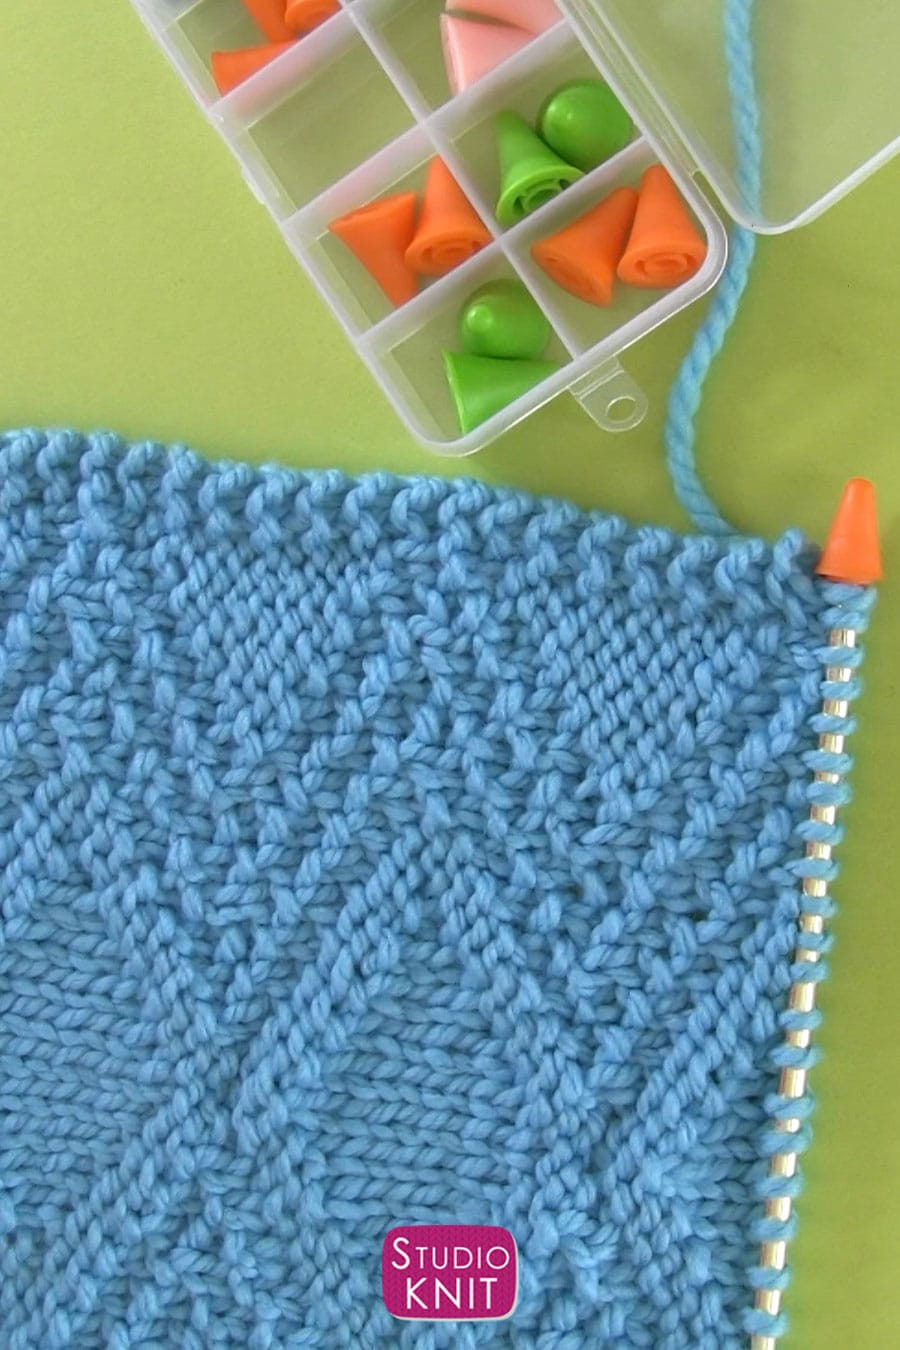 Knitting Needle Point Protectors